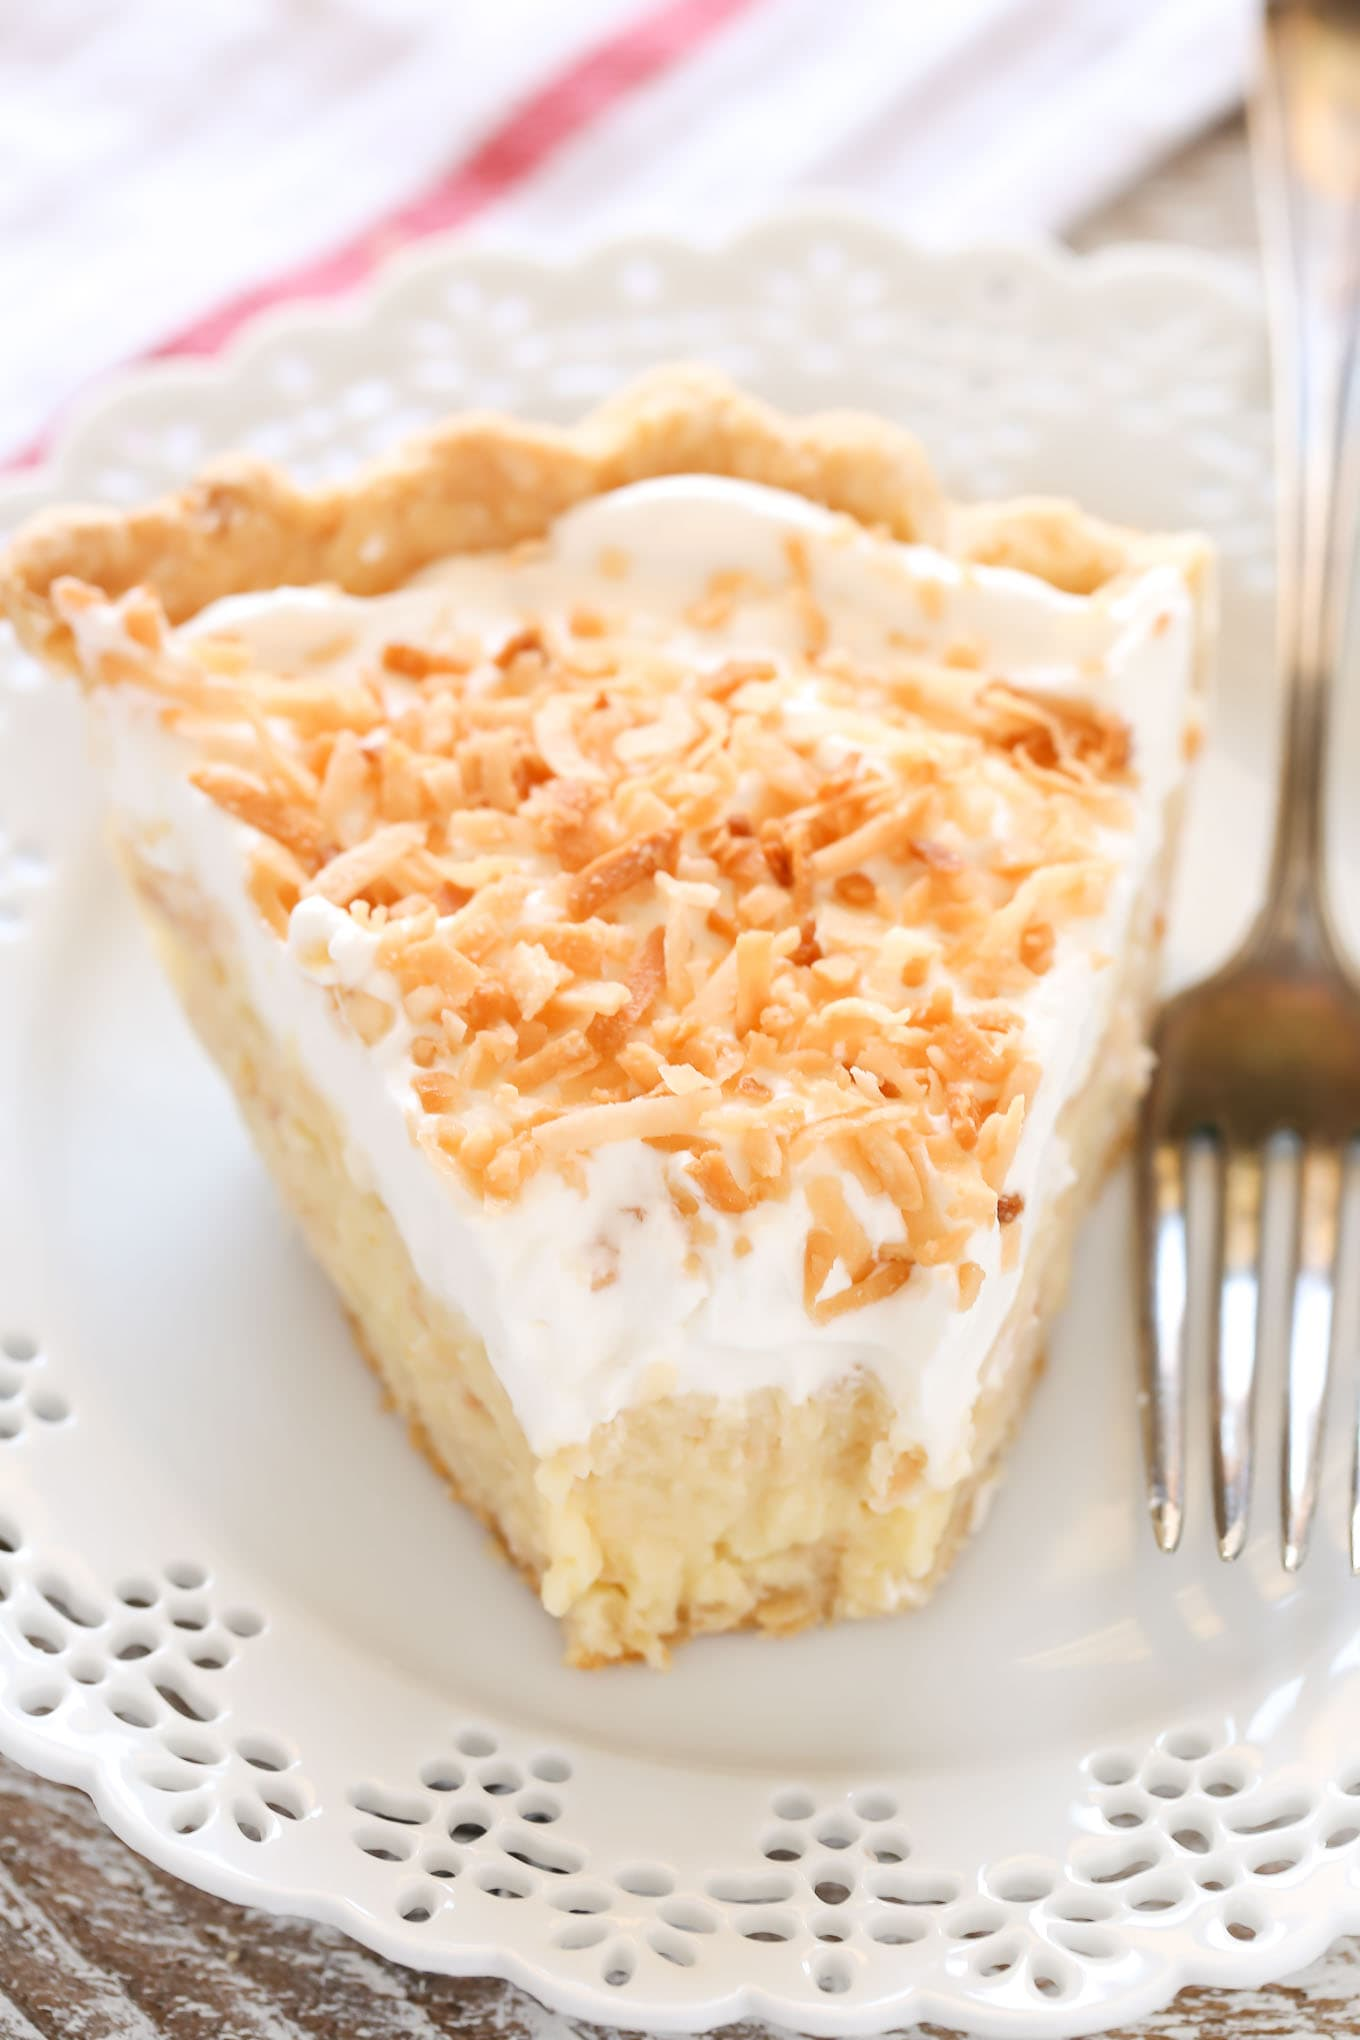 A homemade pie crust filled with a creamy coconut filling topped with whipped cream and toasted coconut. This homemade coconut cream pie recipe is so easy to make and delicious!